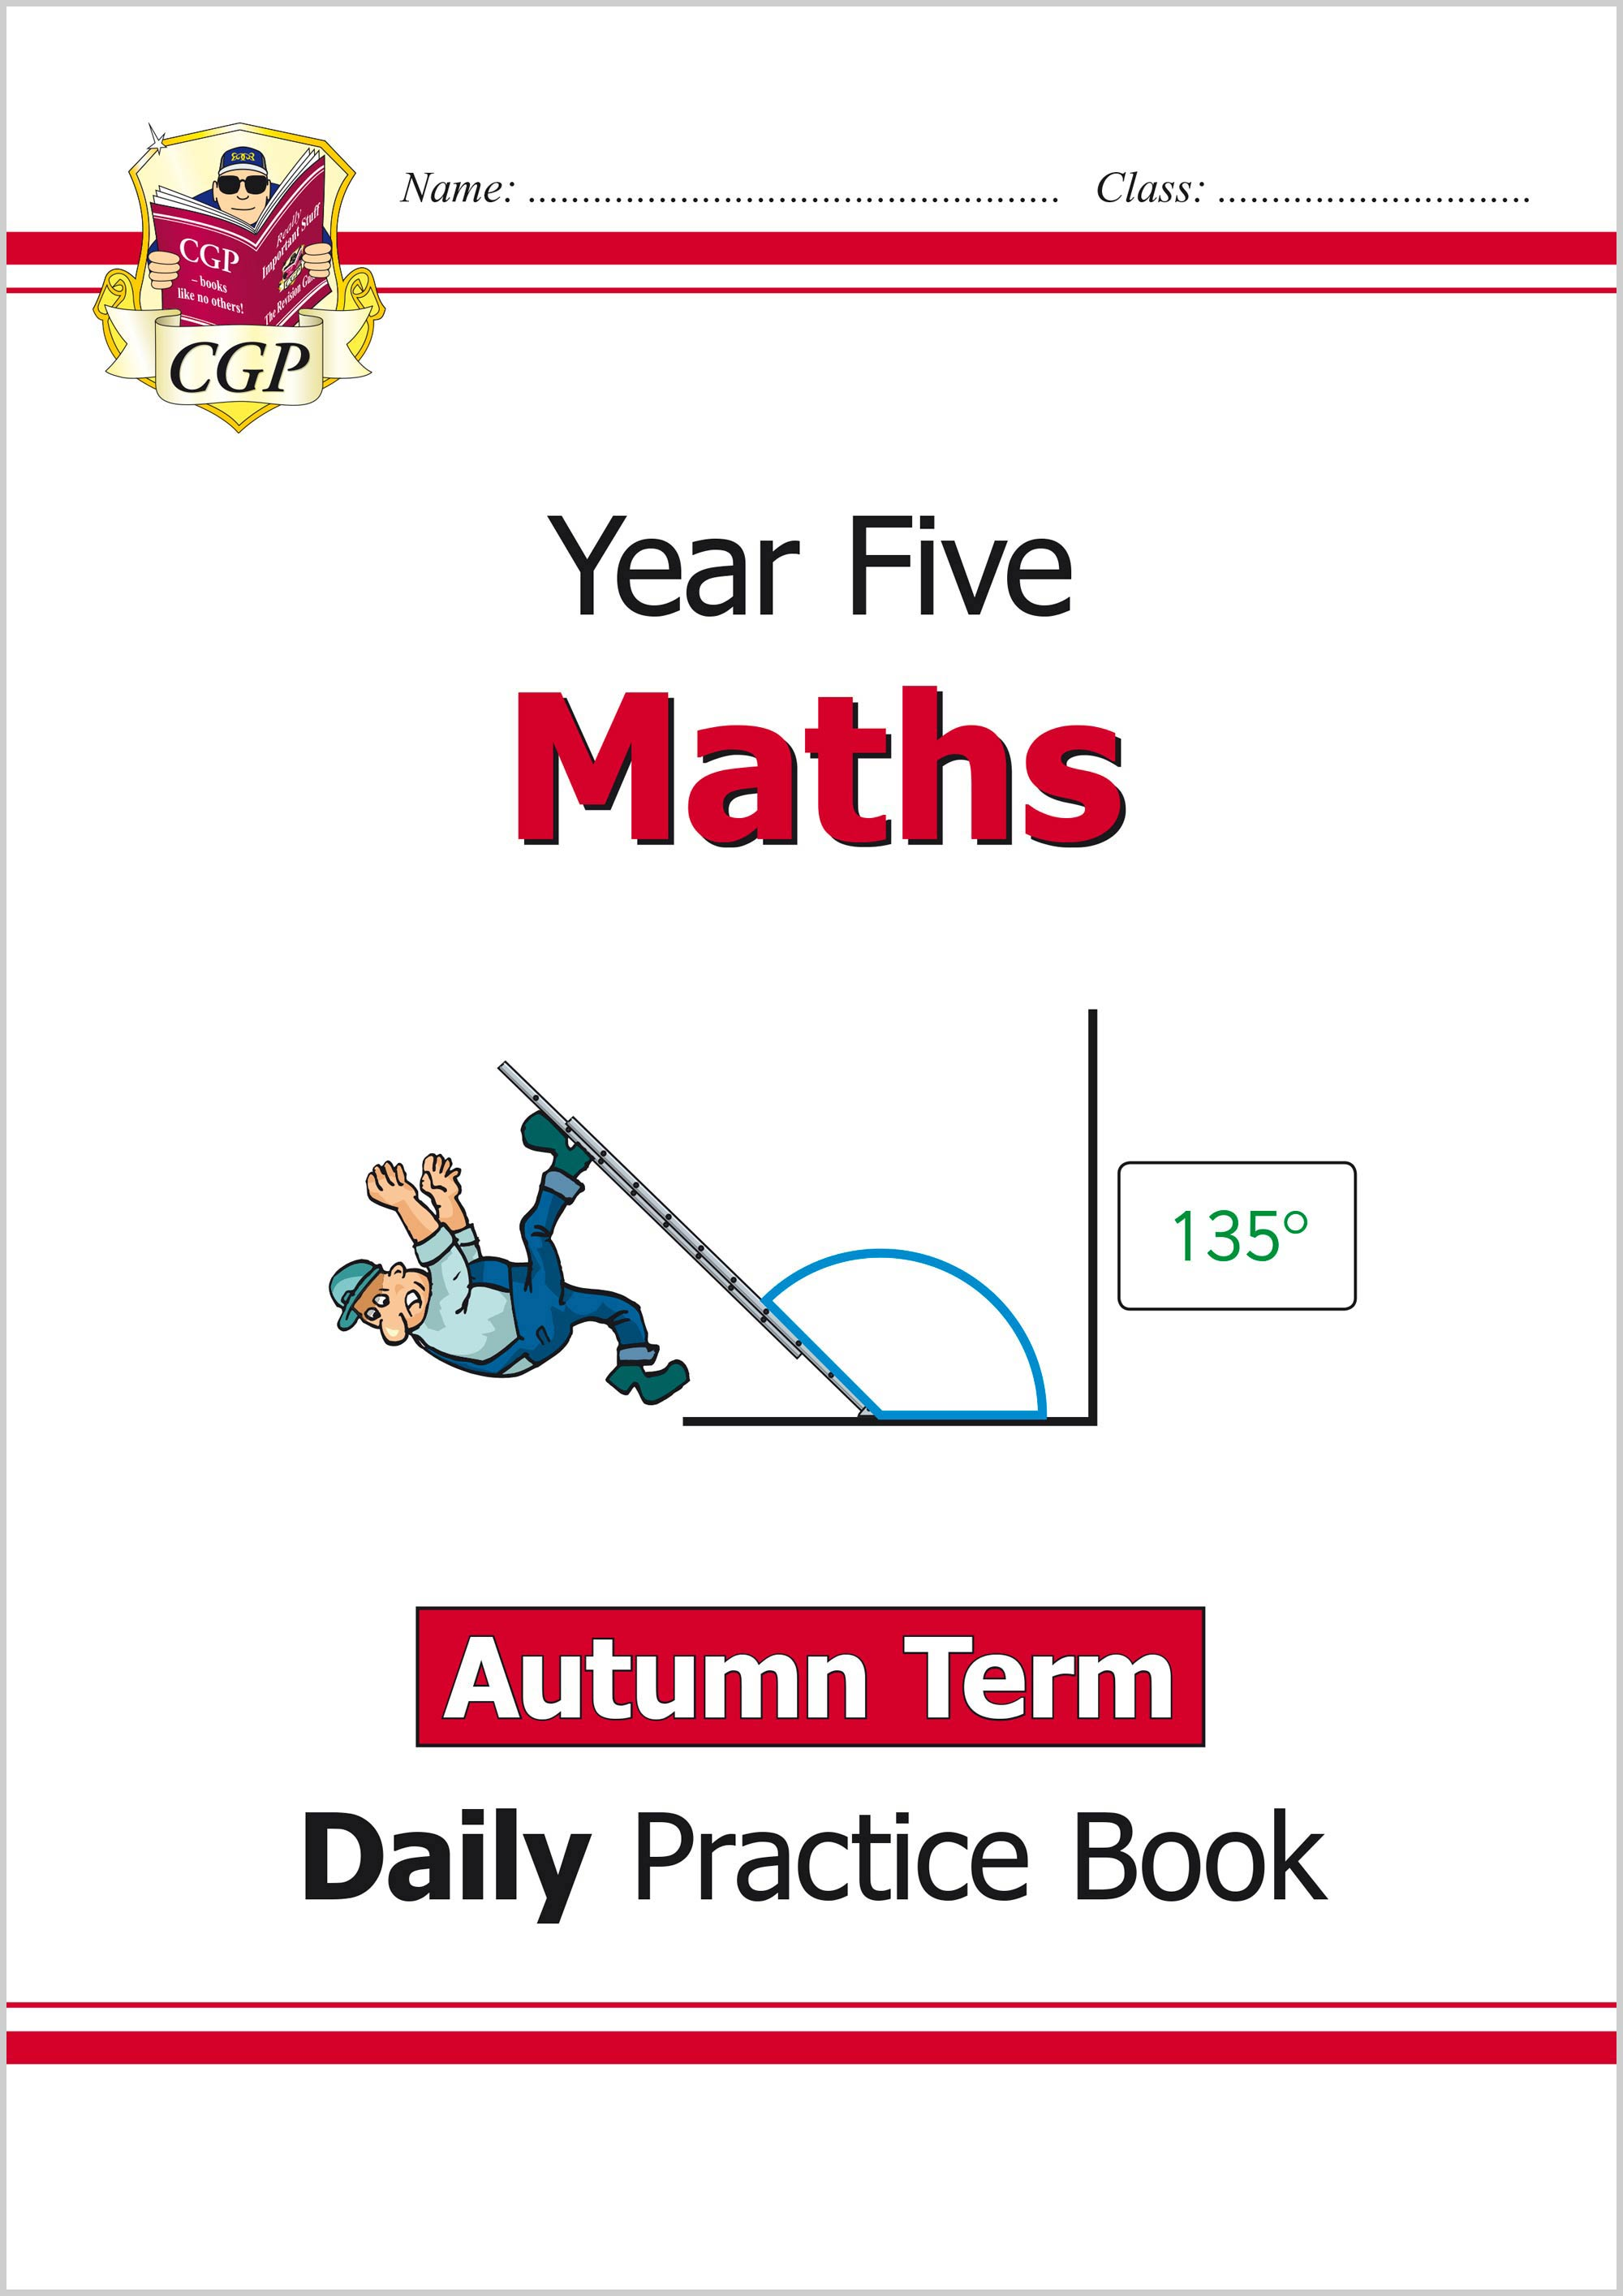 M5WAU21 - New KS2 Maths Daily Practice Book: Year 5 - Autumn Term